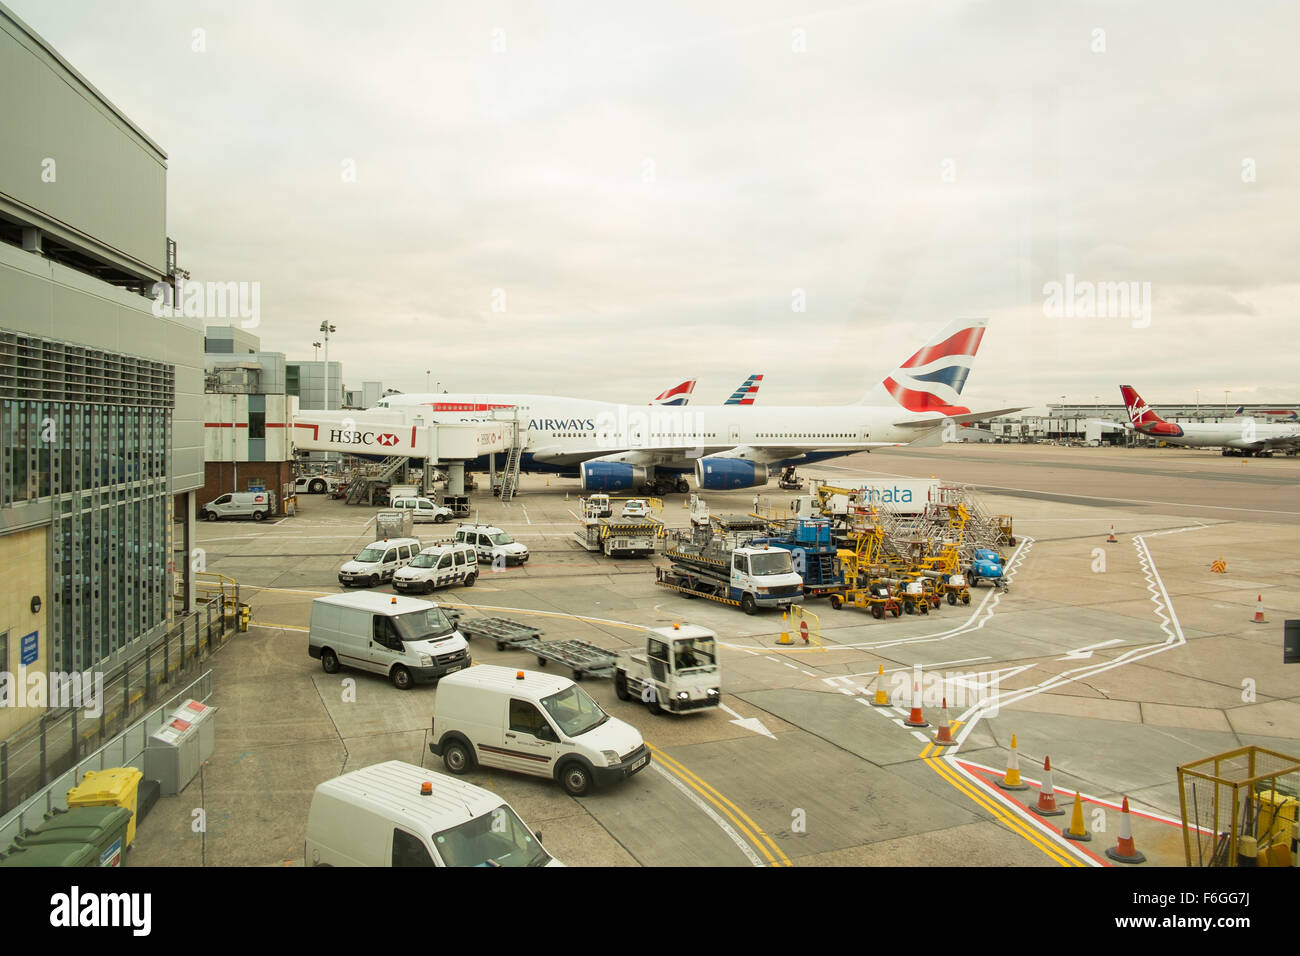 Heathrow Airport. British Airways planes on the apron ready to depart. - Stock Image